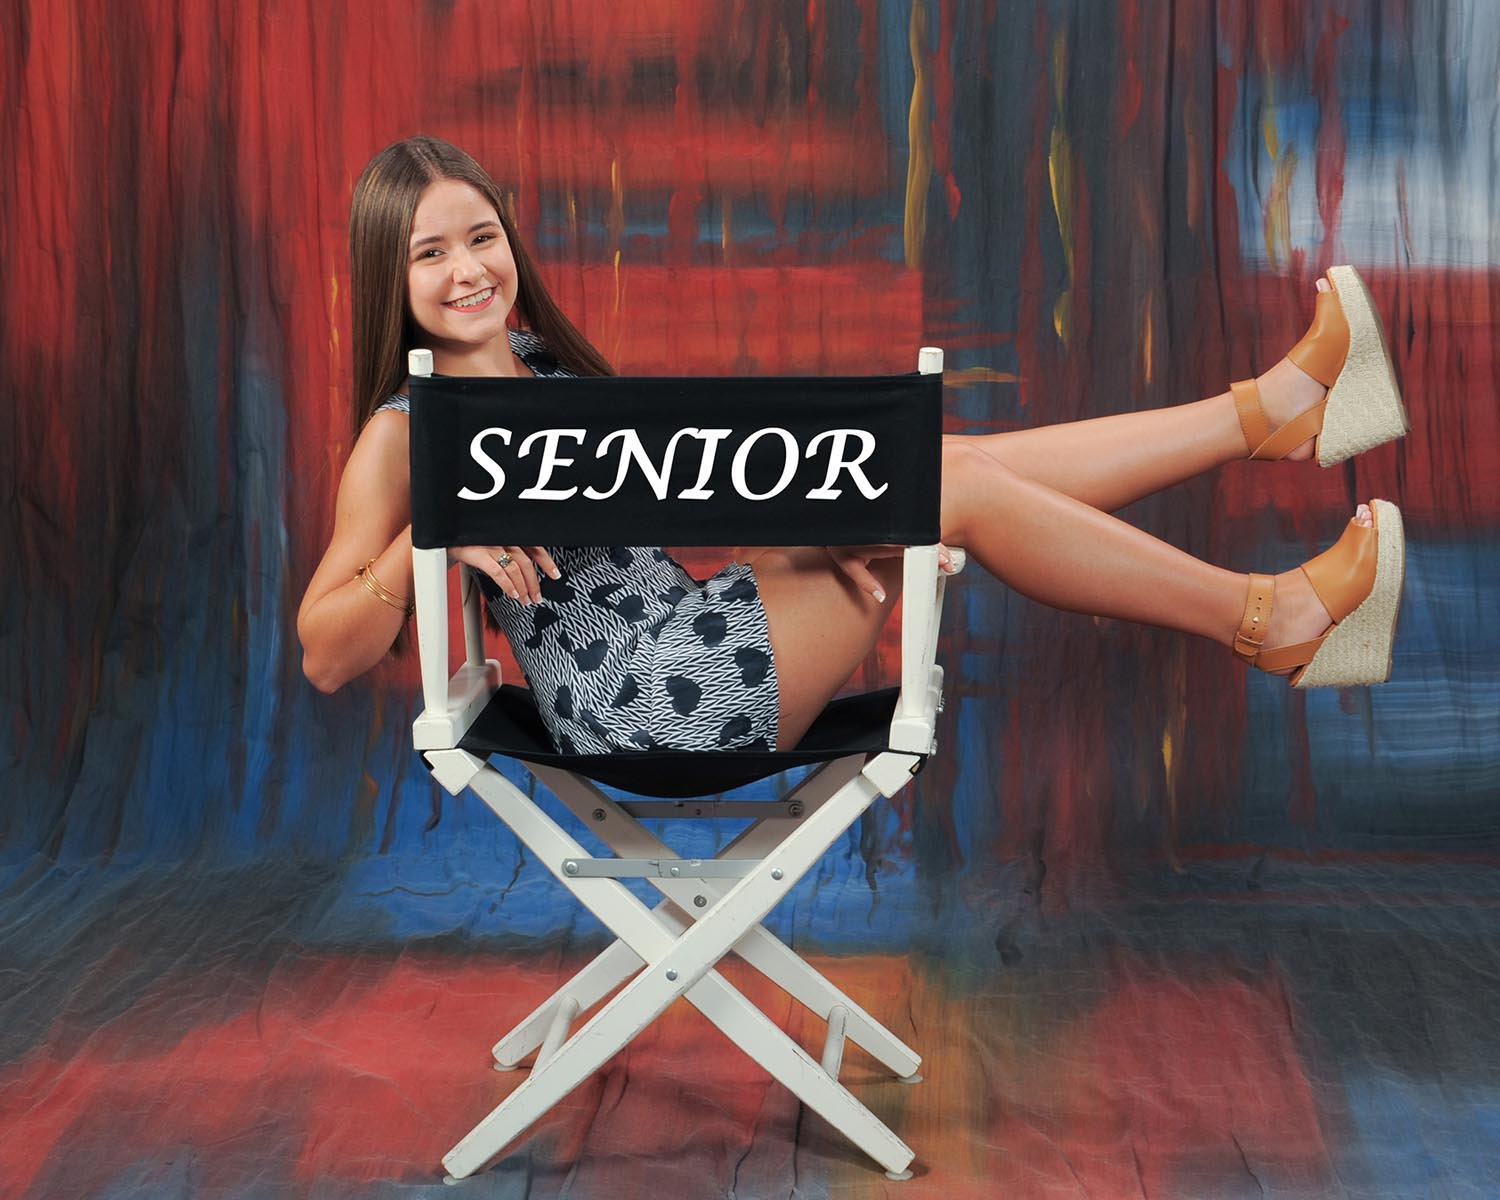 Tips to capture the best Senior Portrait